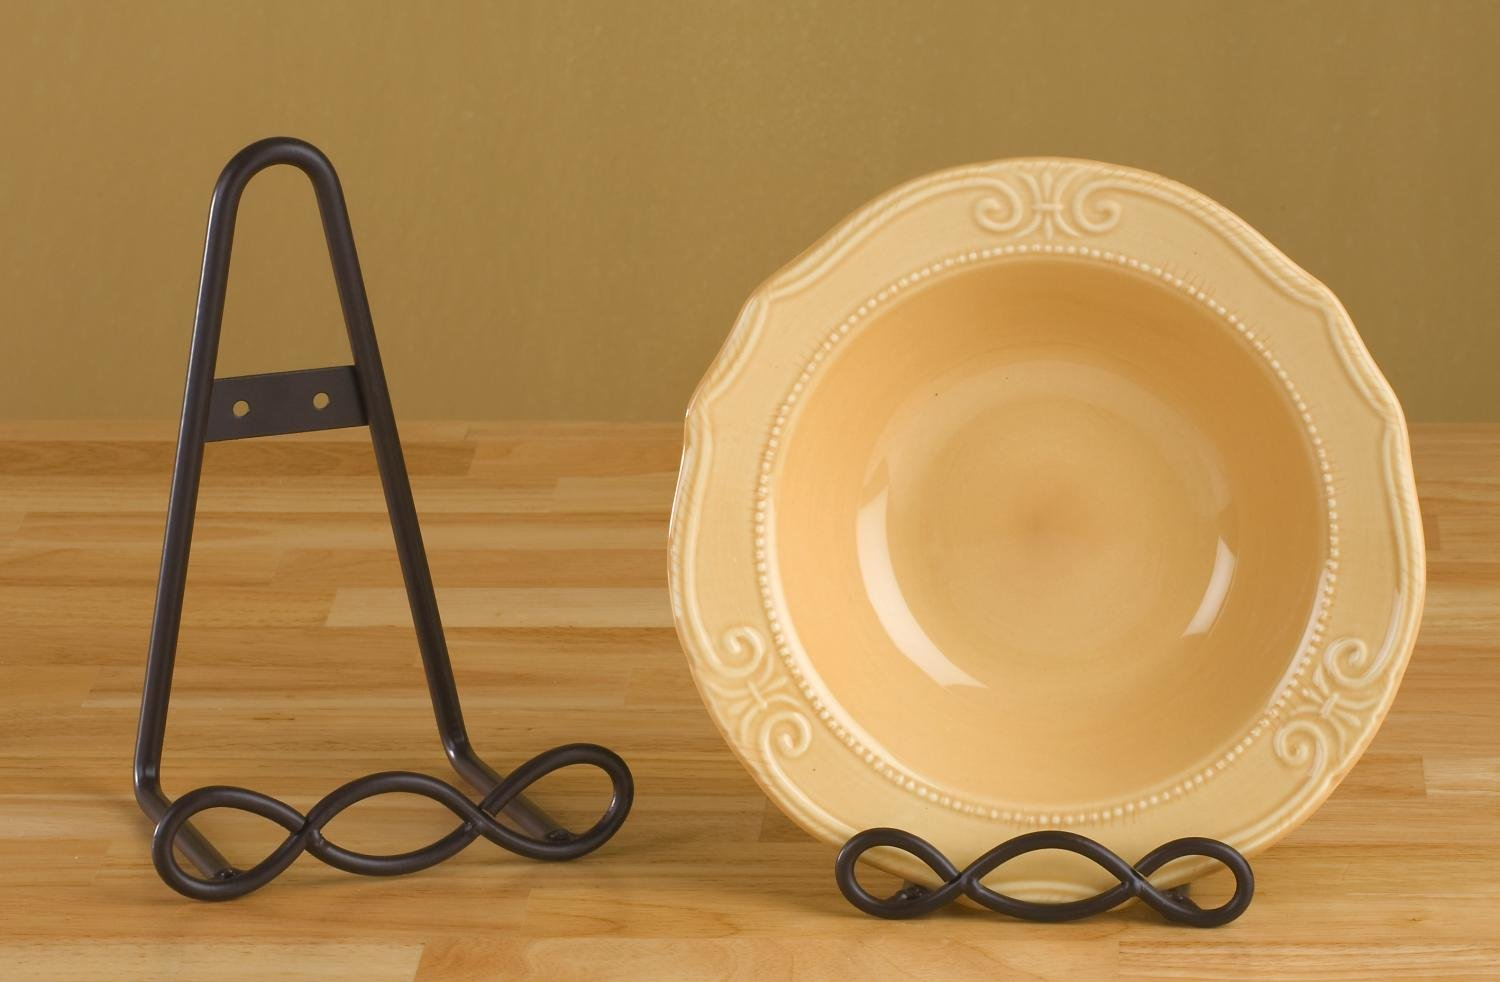 Loop Design Black Wall / Table Top Stand by Book Stands